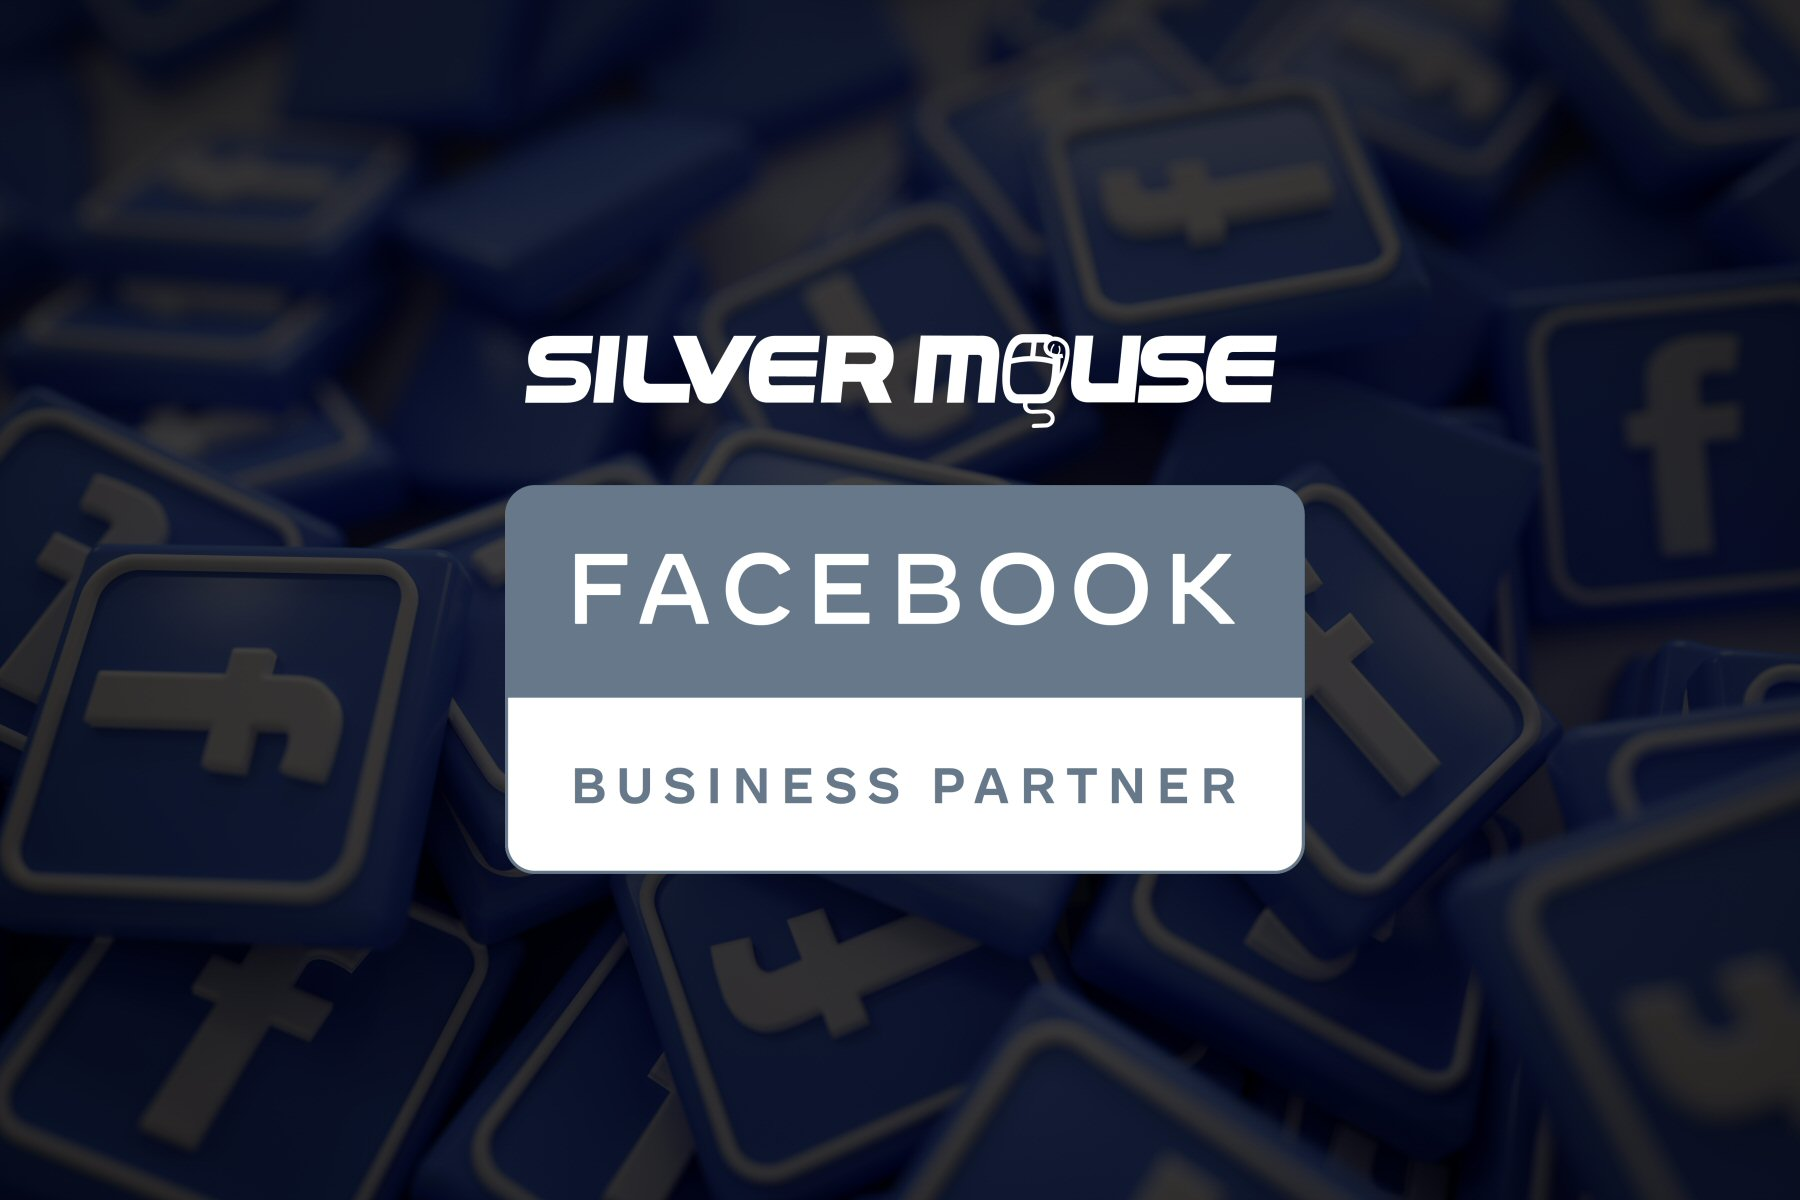 Silver Mouse is Facebook Preferred Agency Partner